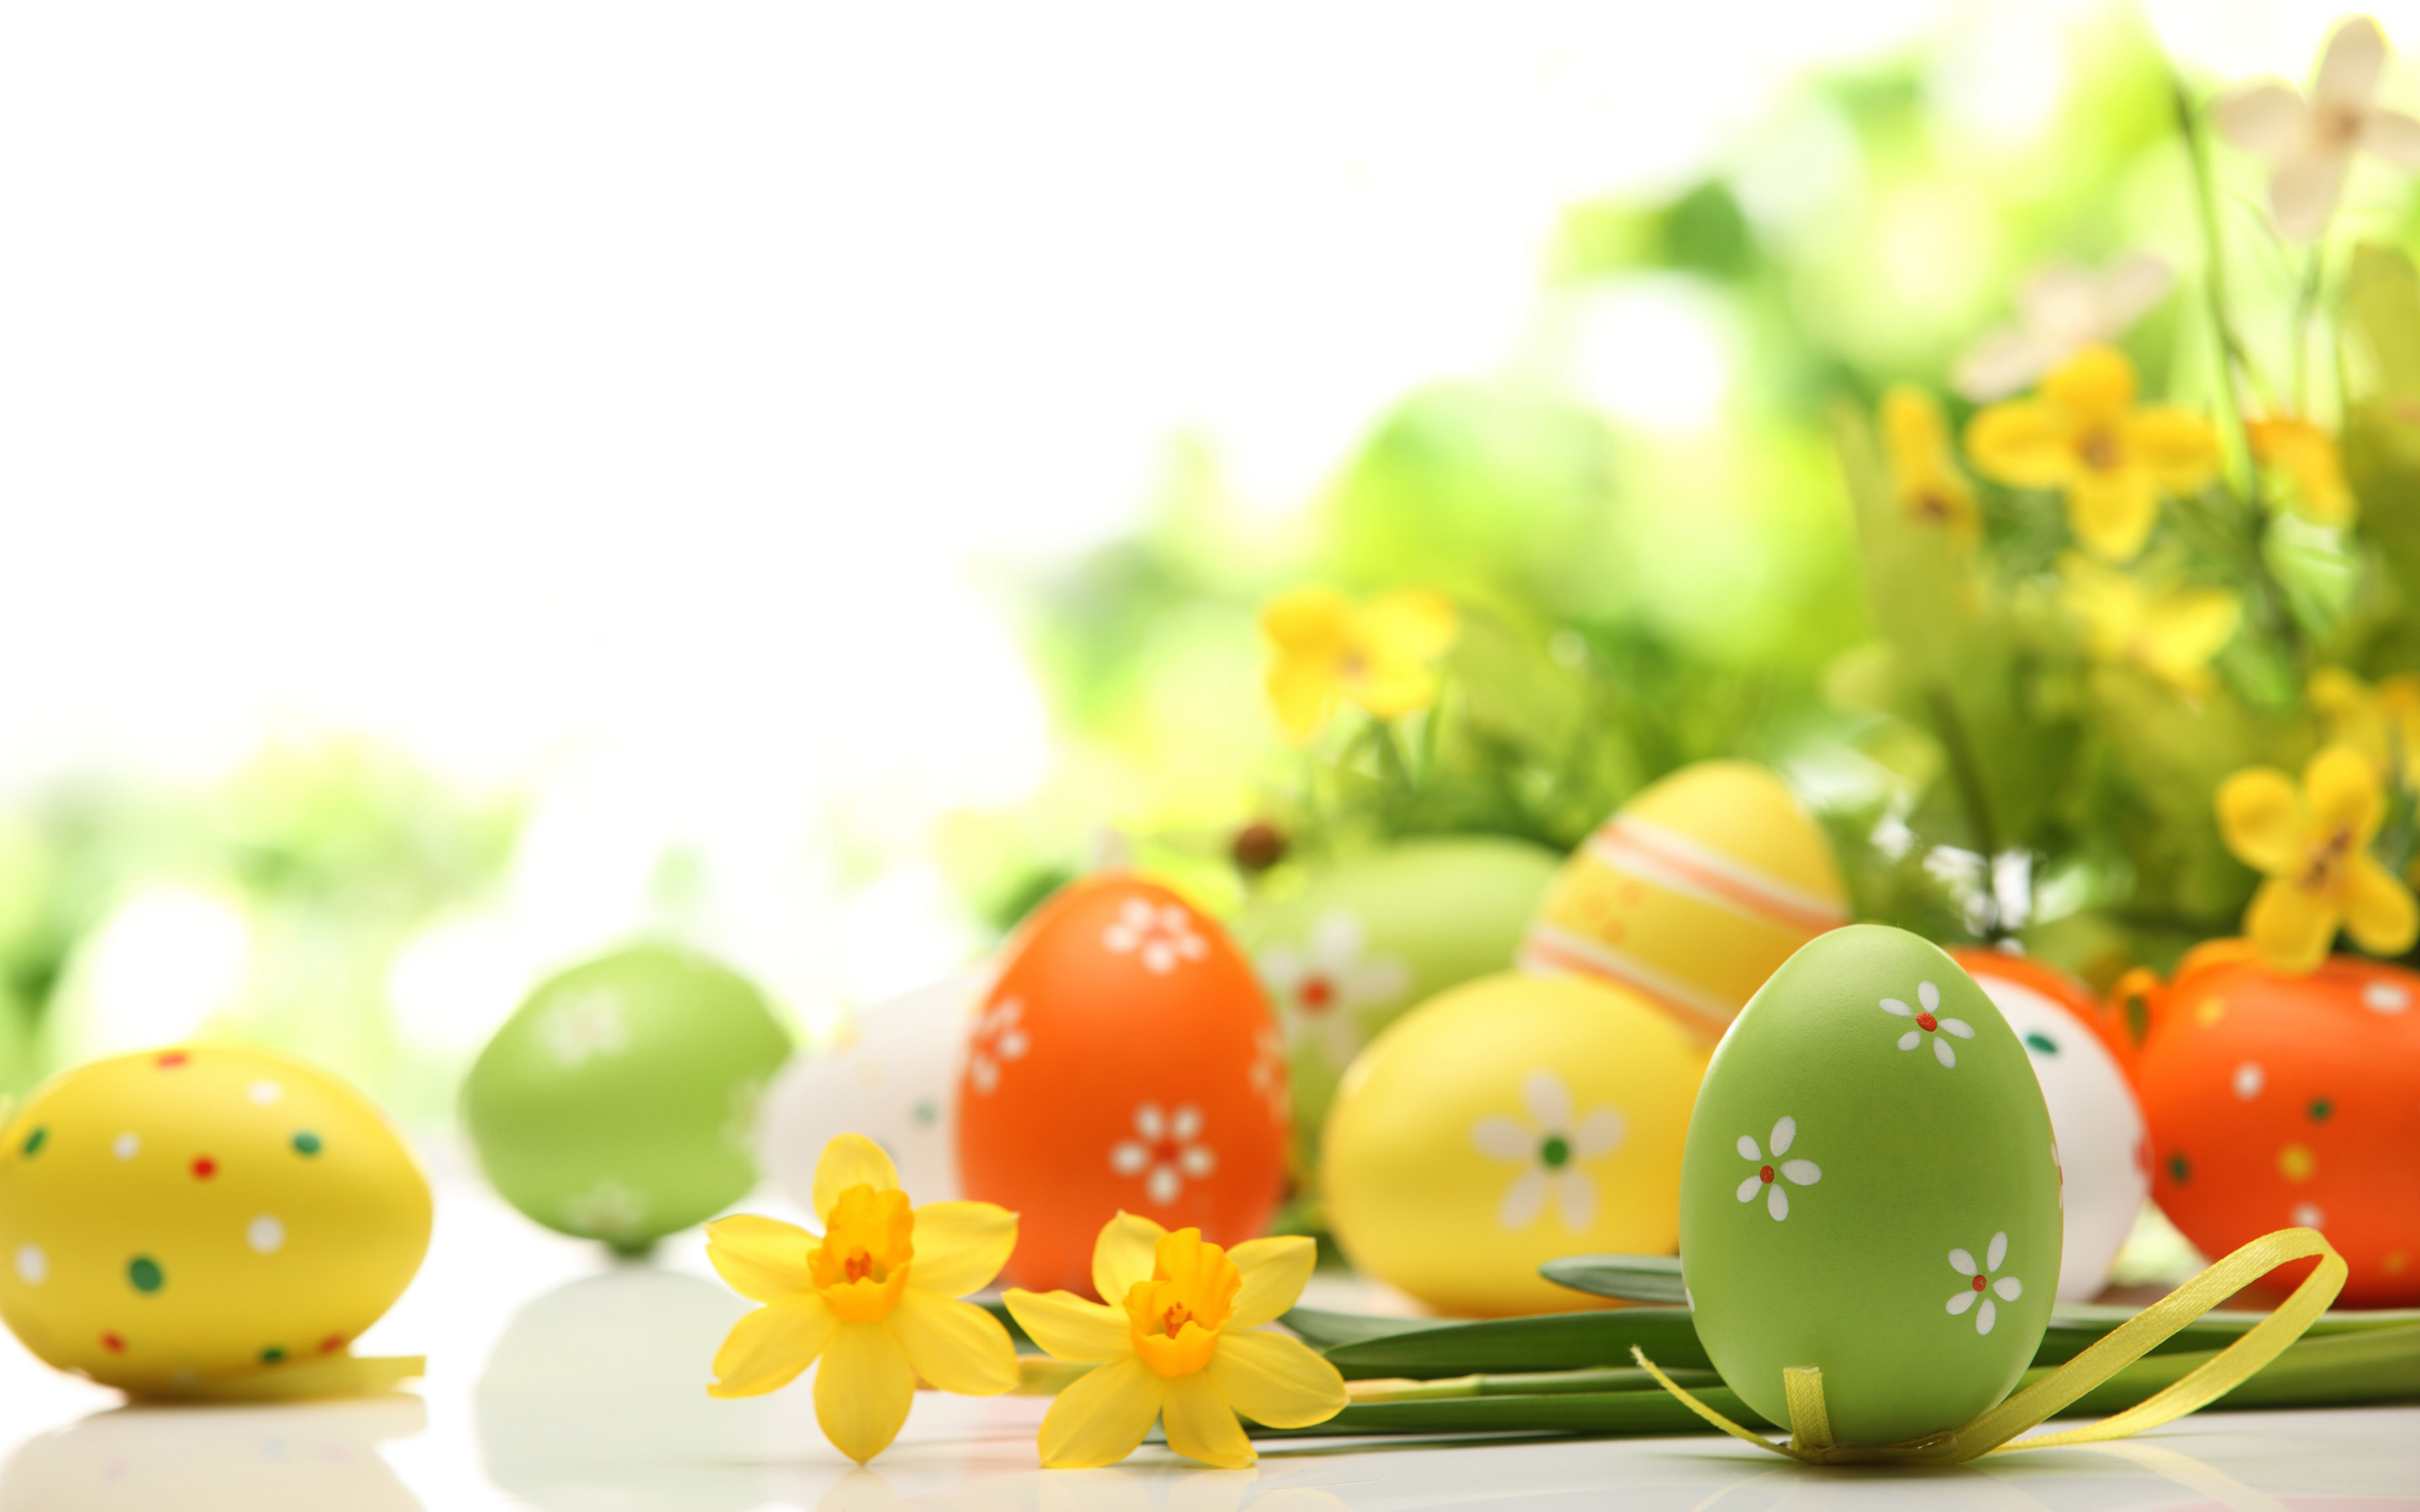 Easter Wallpapers HD download colletion 60 2880x1800